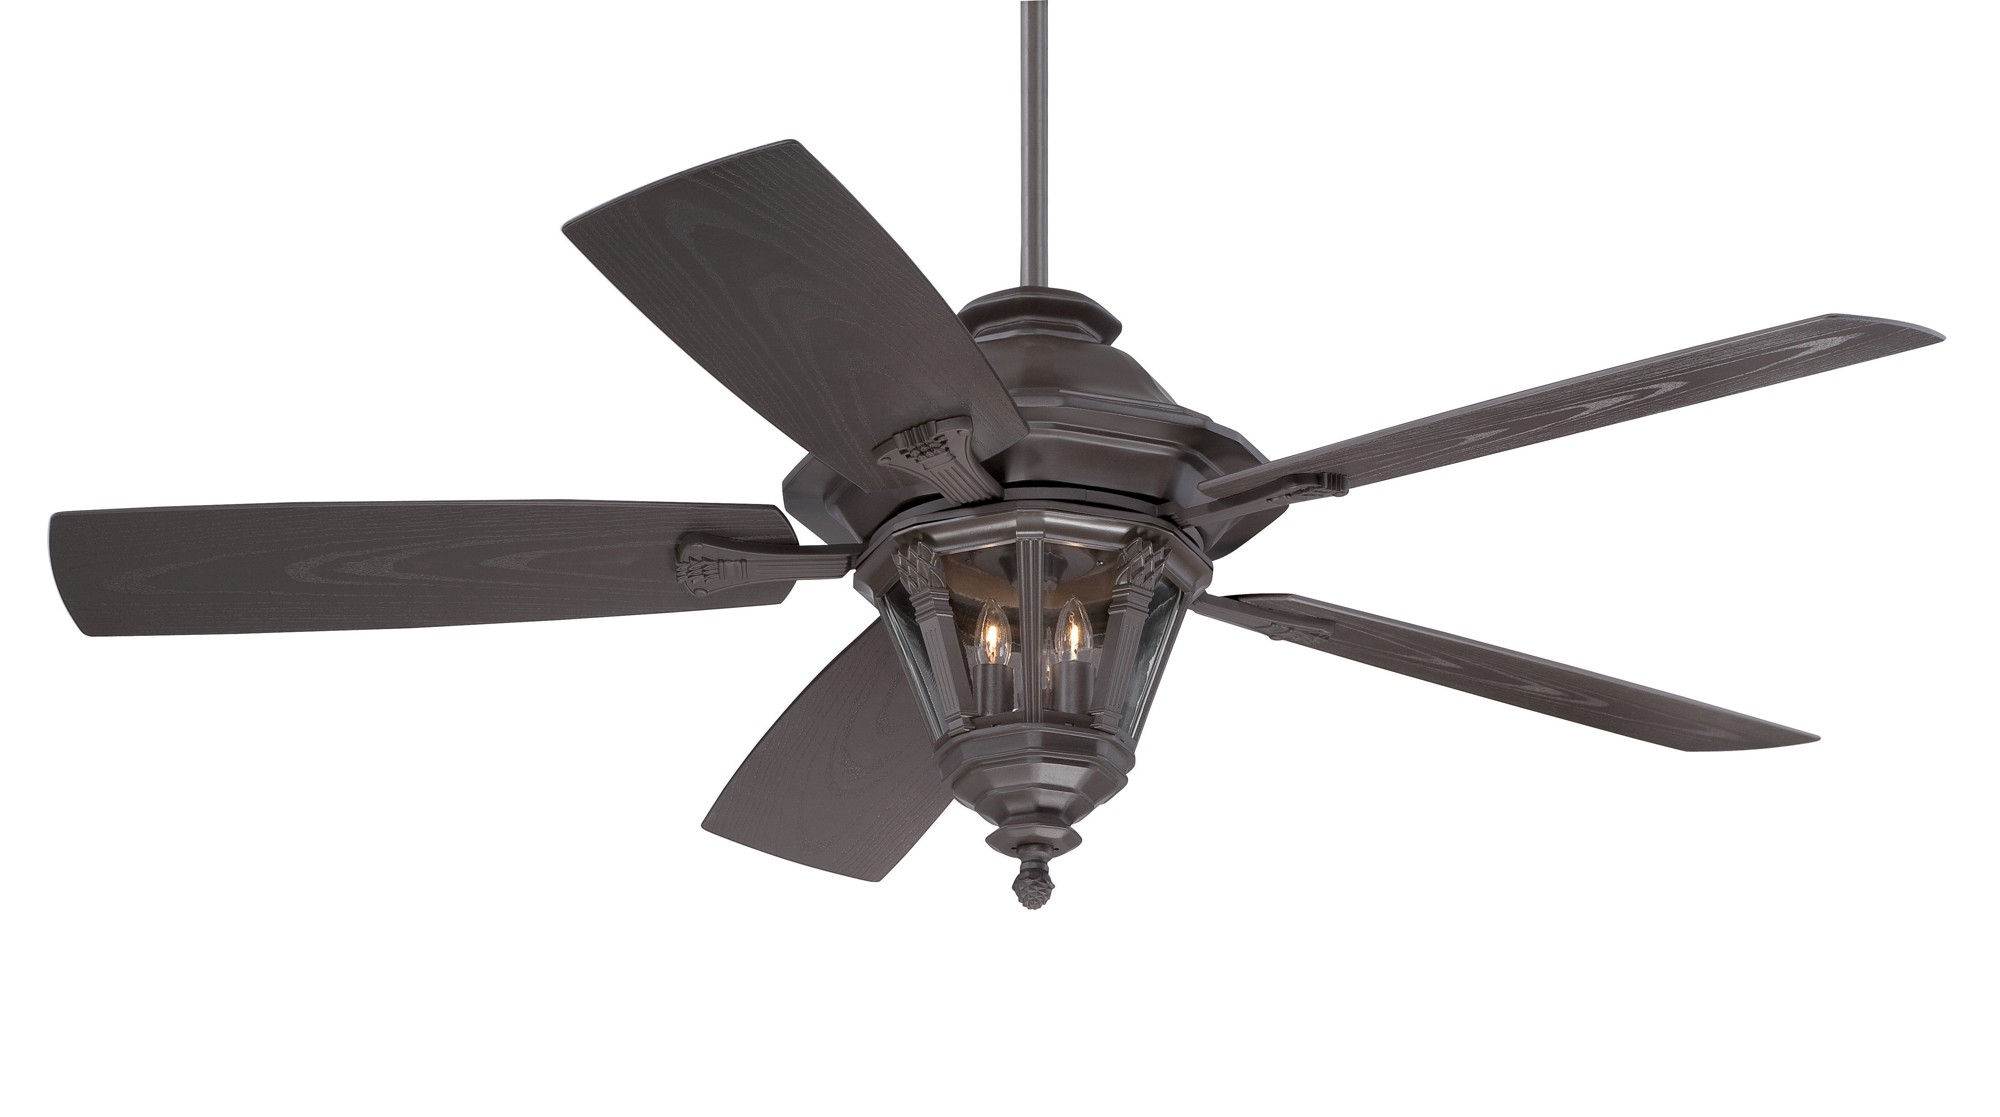 Outdoor Ceiling Fans With Lights And Remote Intended For Widely Used Harbor Breeze White Outdoor Ceiling Fan – Outdoor Designs (View 10 of 20)